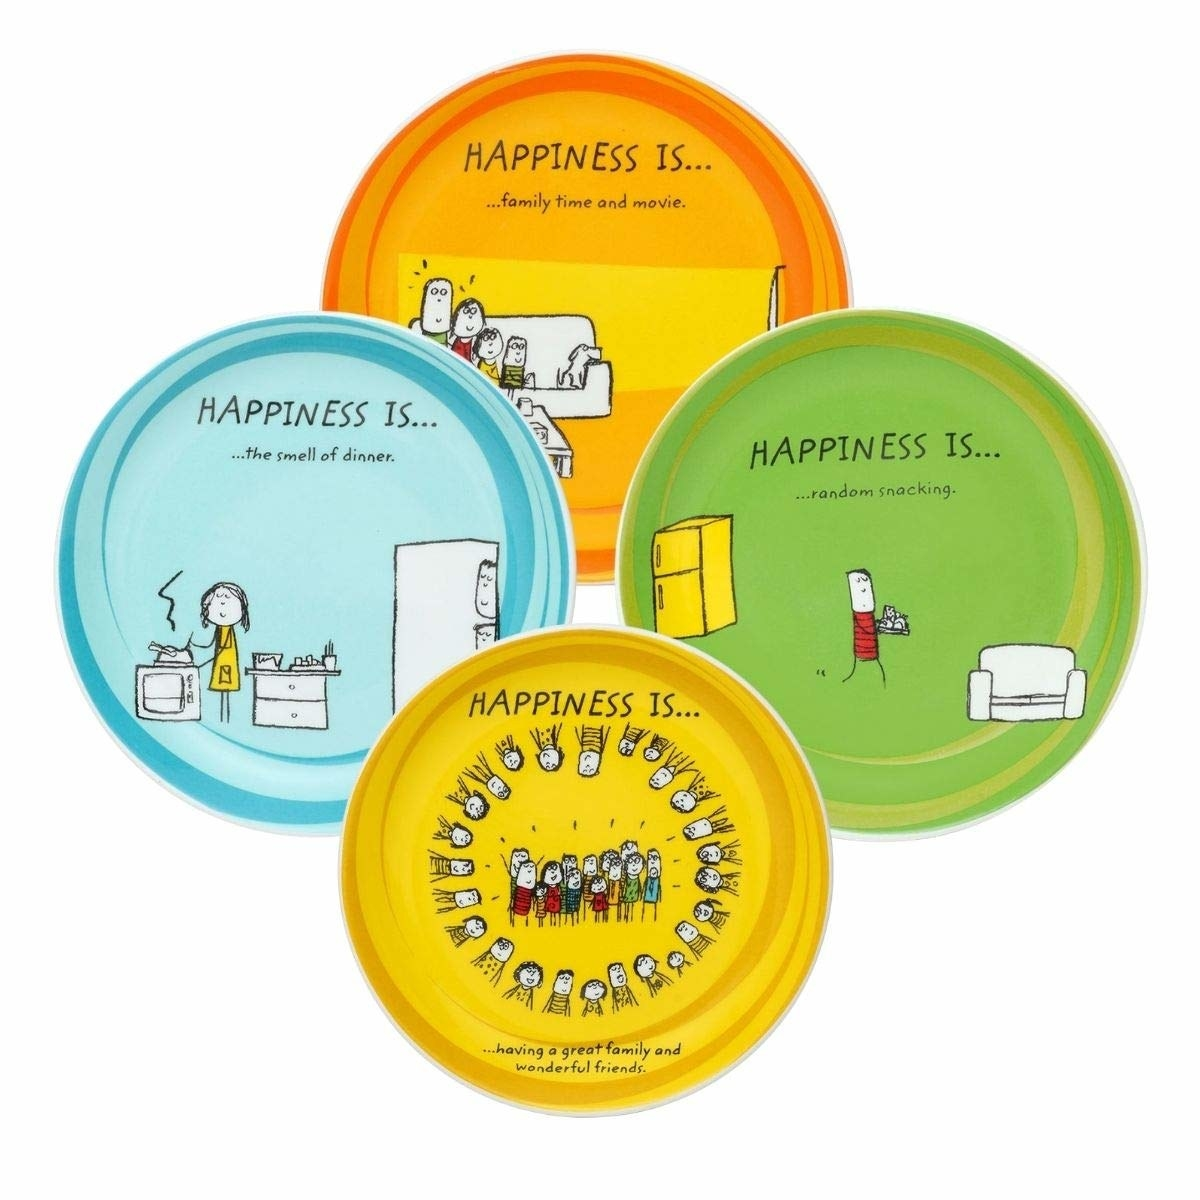 4 colourful plates with happiness quotes printed on them.